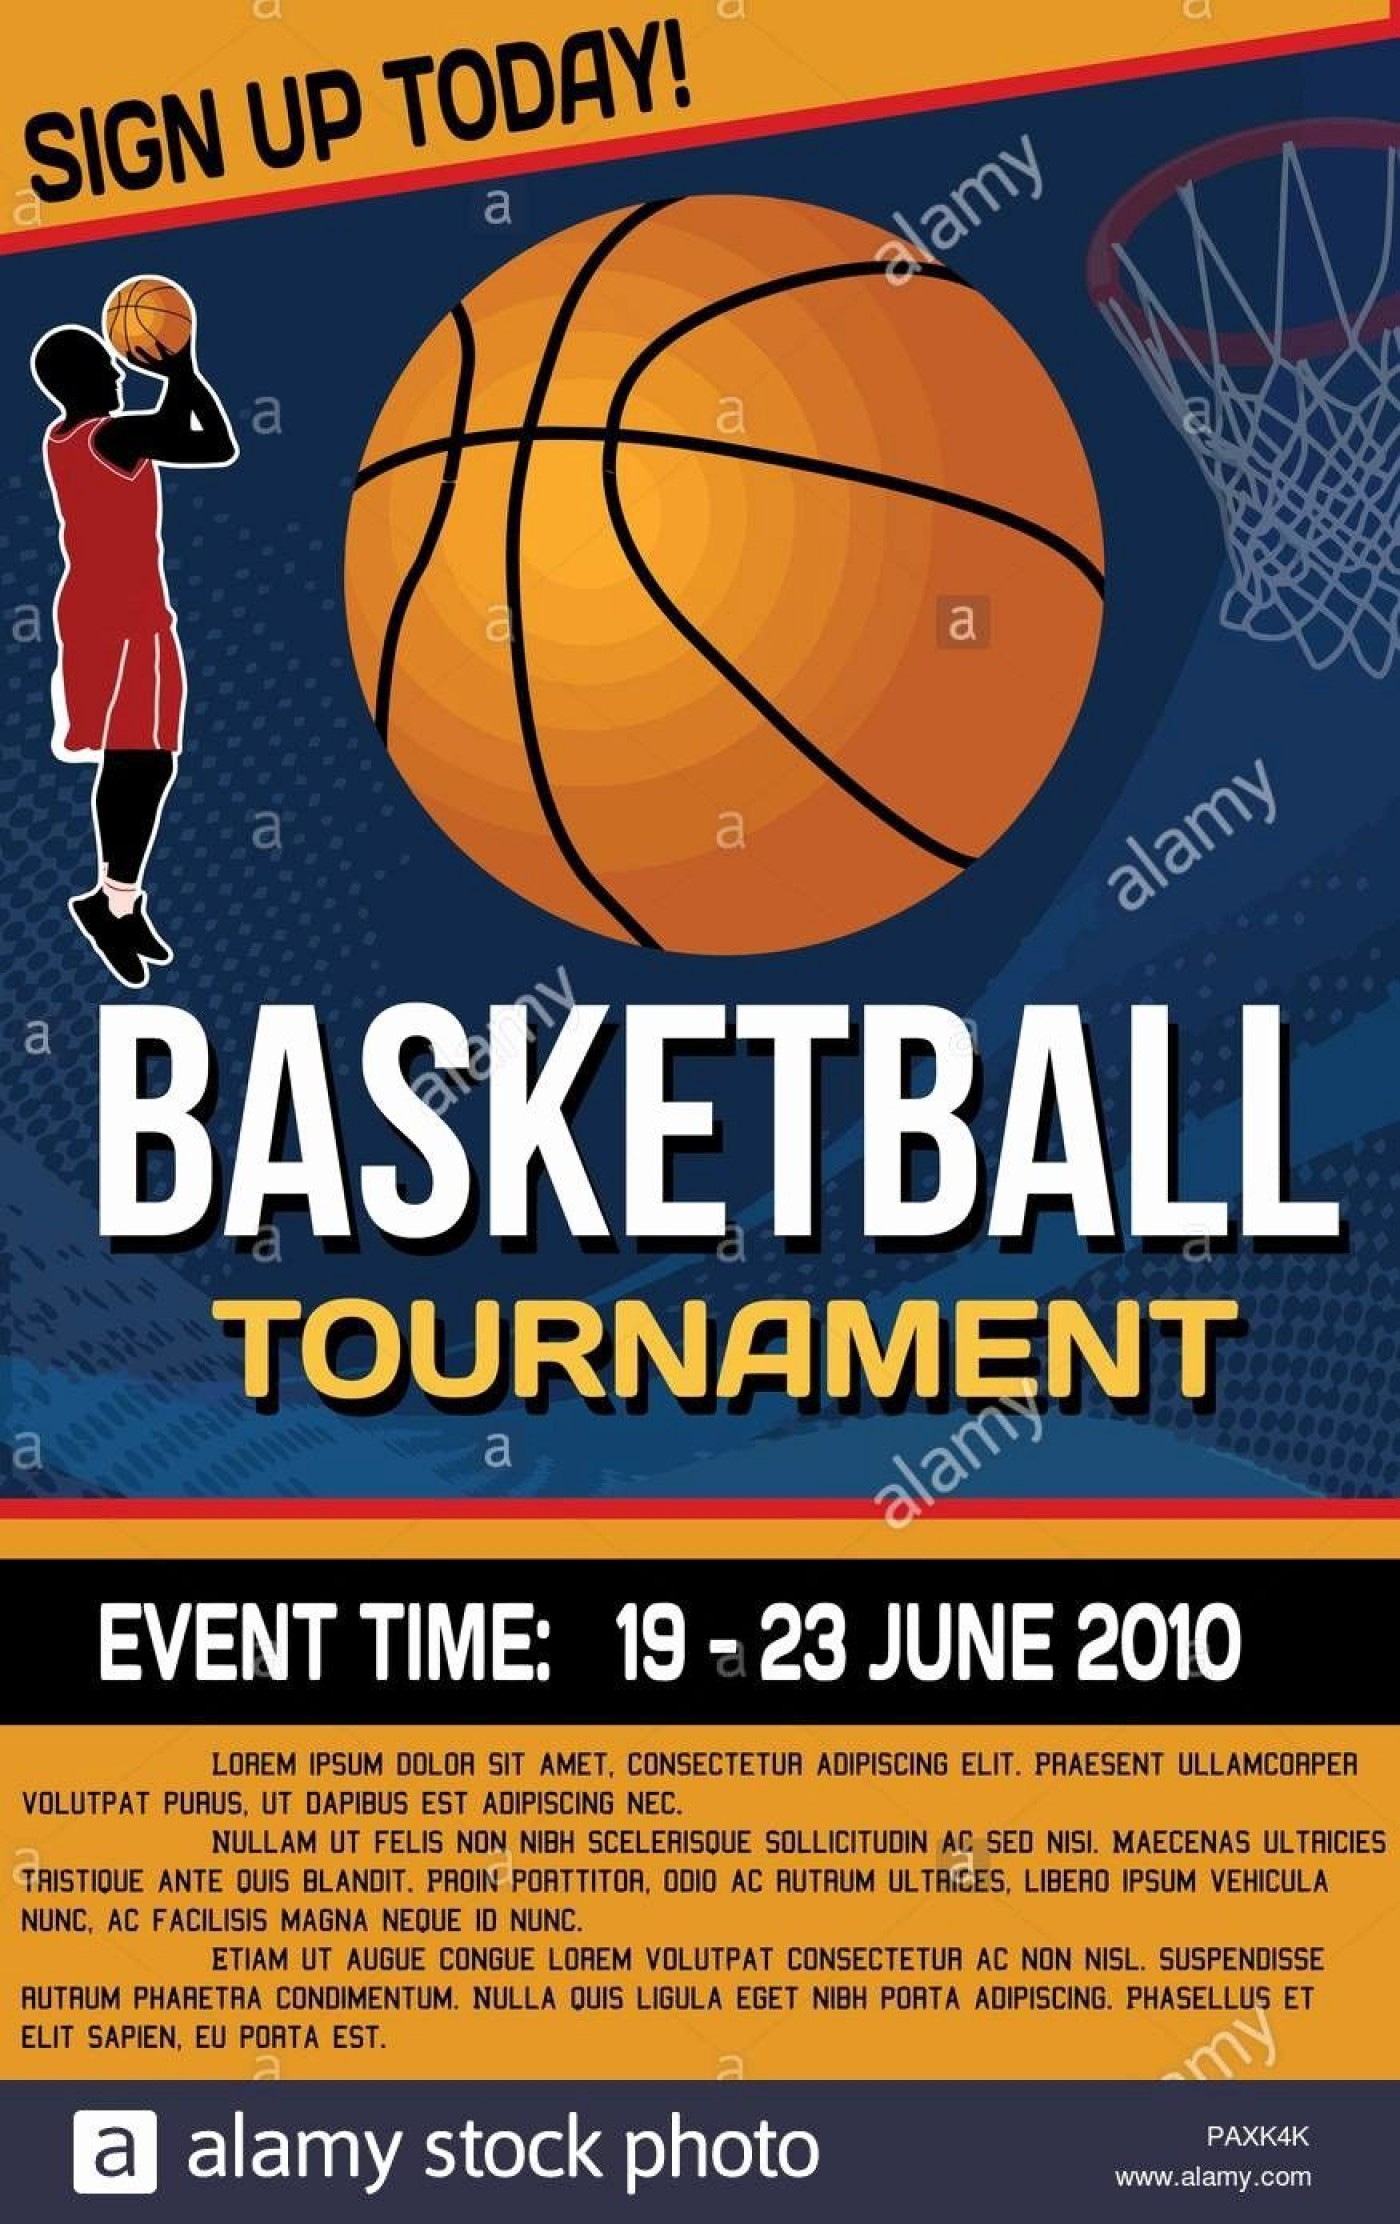 007 Fearsome Basketball Tournament Flyer Template Design  3 On Free1400